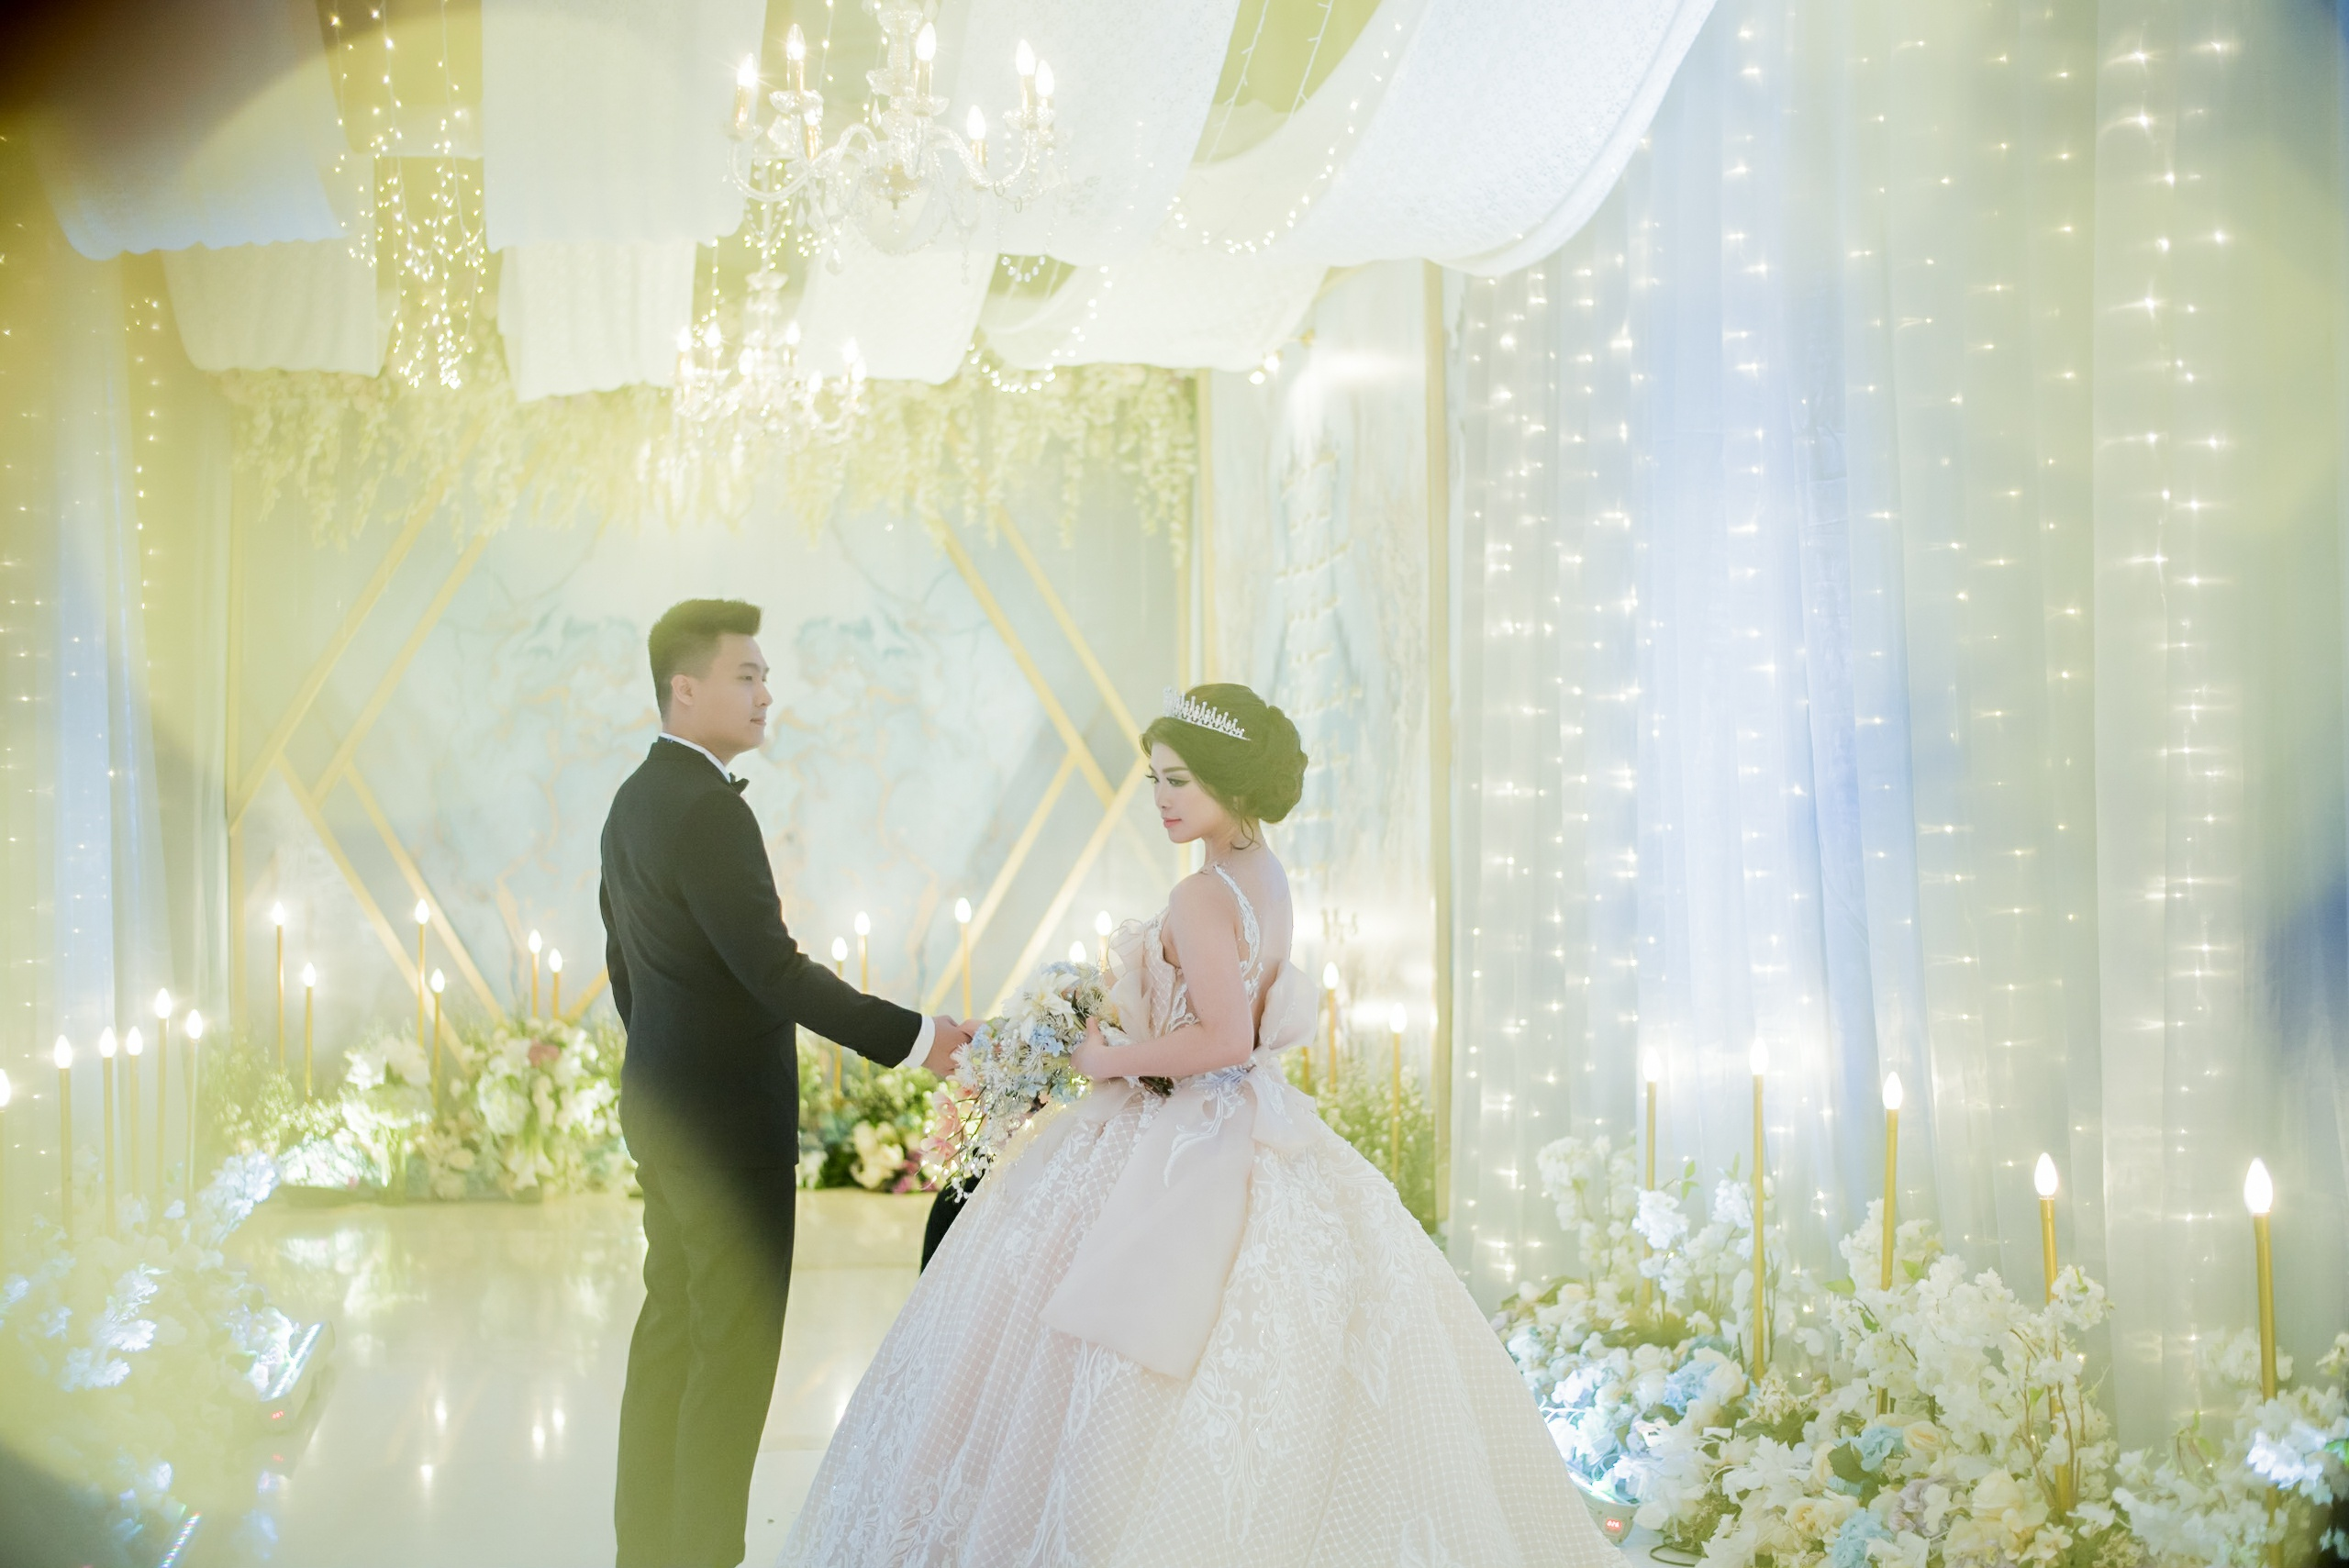 The Wedding Of Fery Cindy By Juzzon Productions Houseofcuff Square Golden Champagne Tie